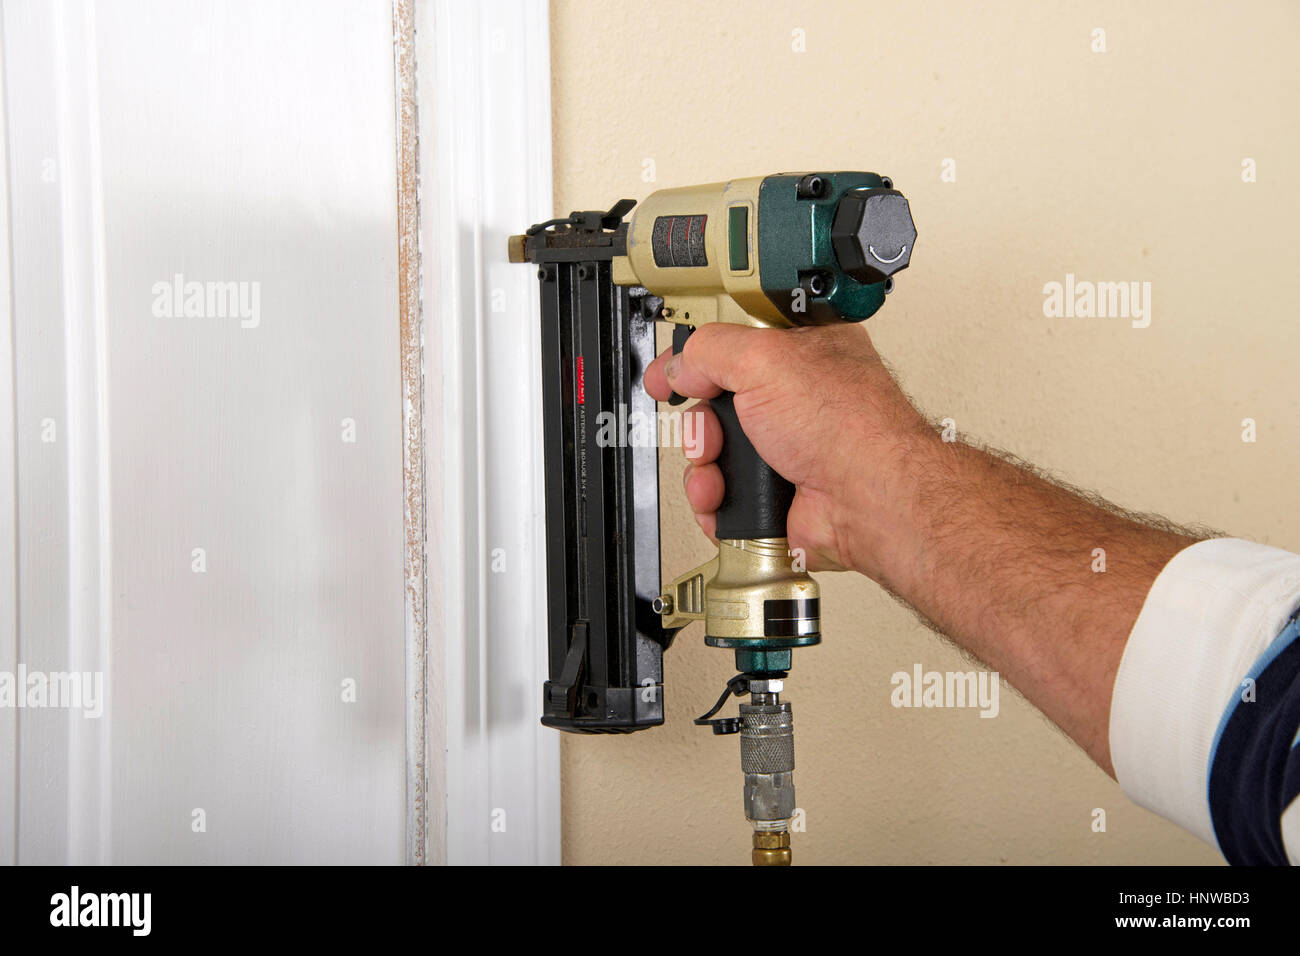 Do it yourself home owner repairing door frame molding with nail gun ...